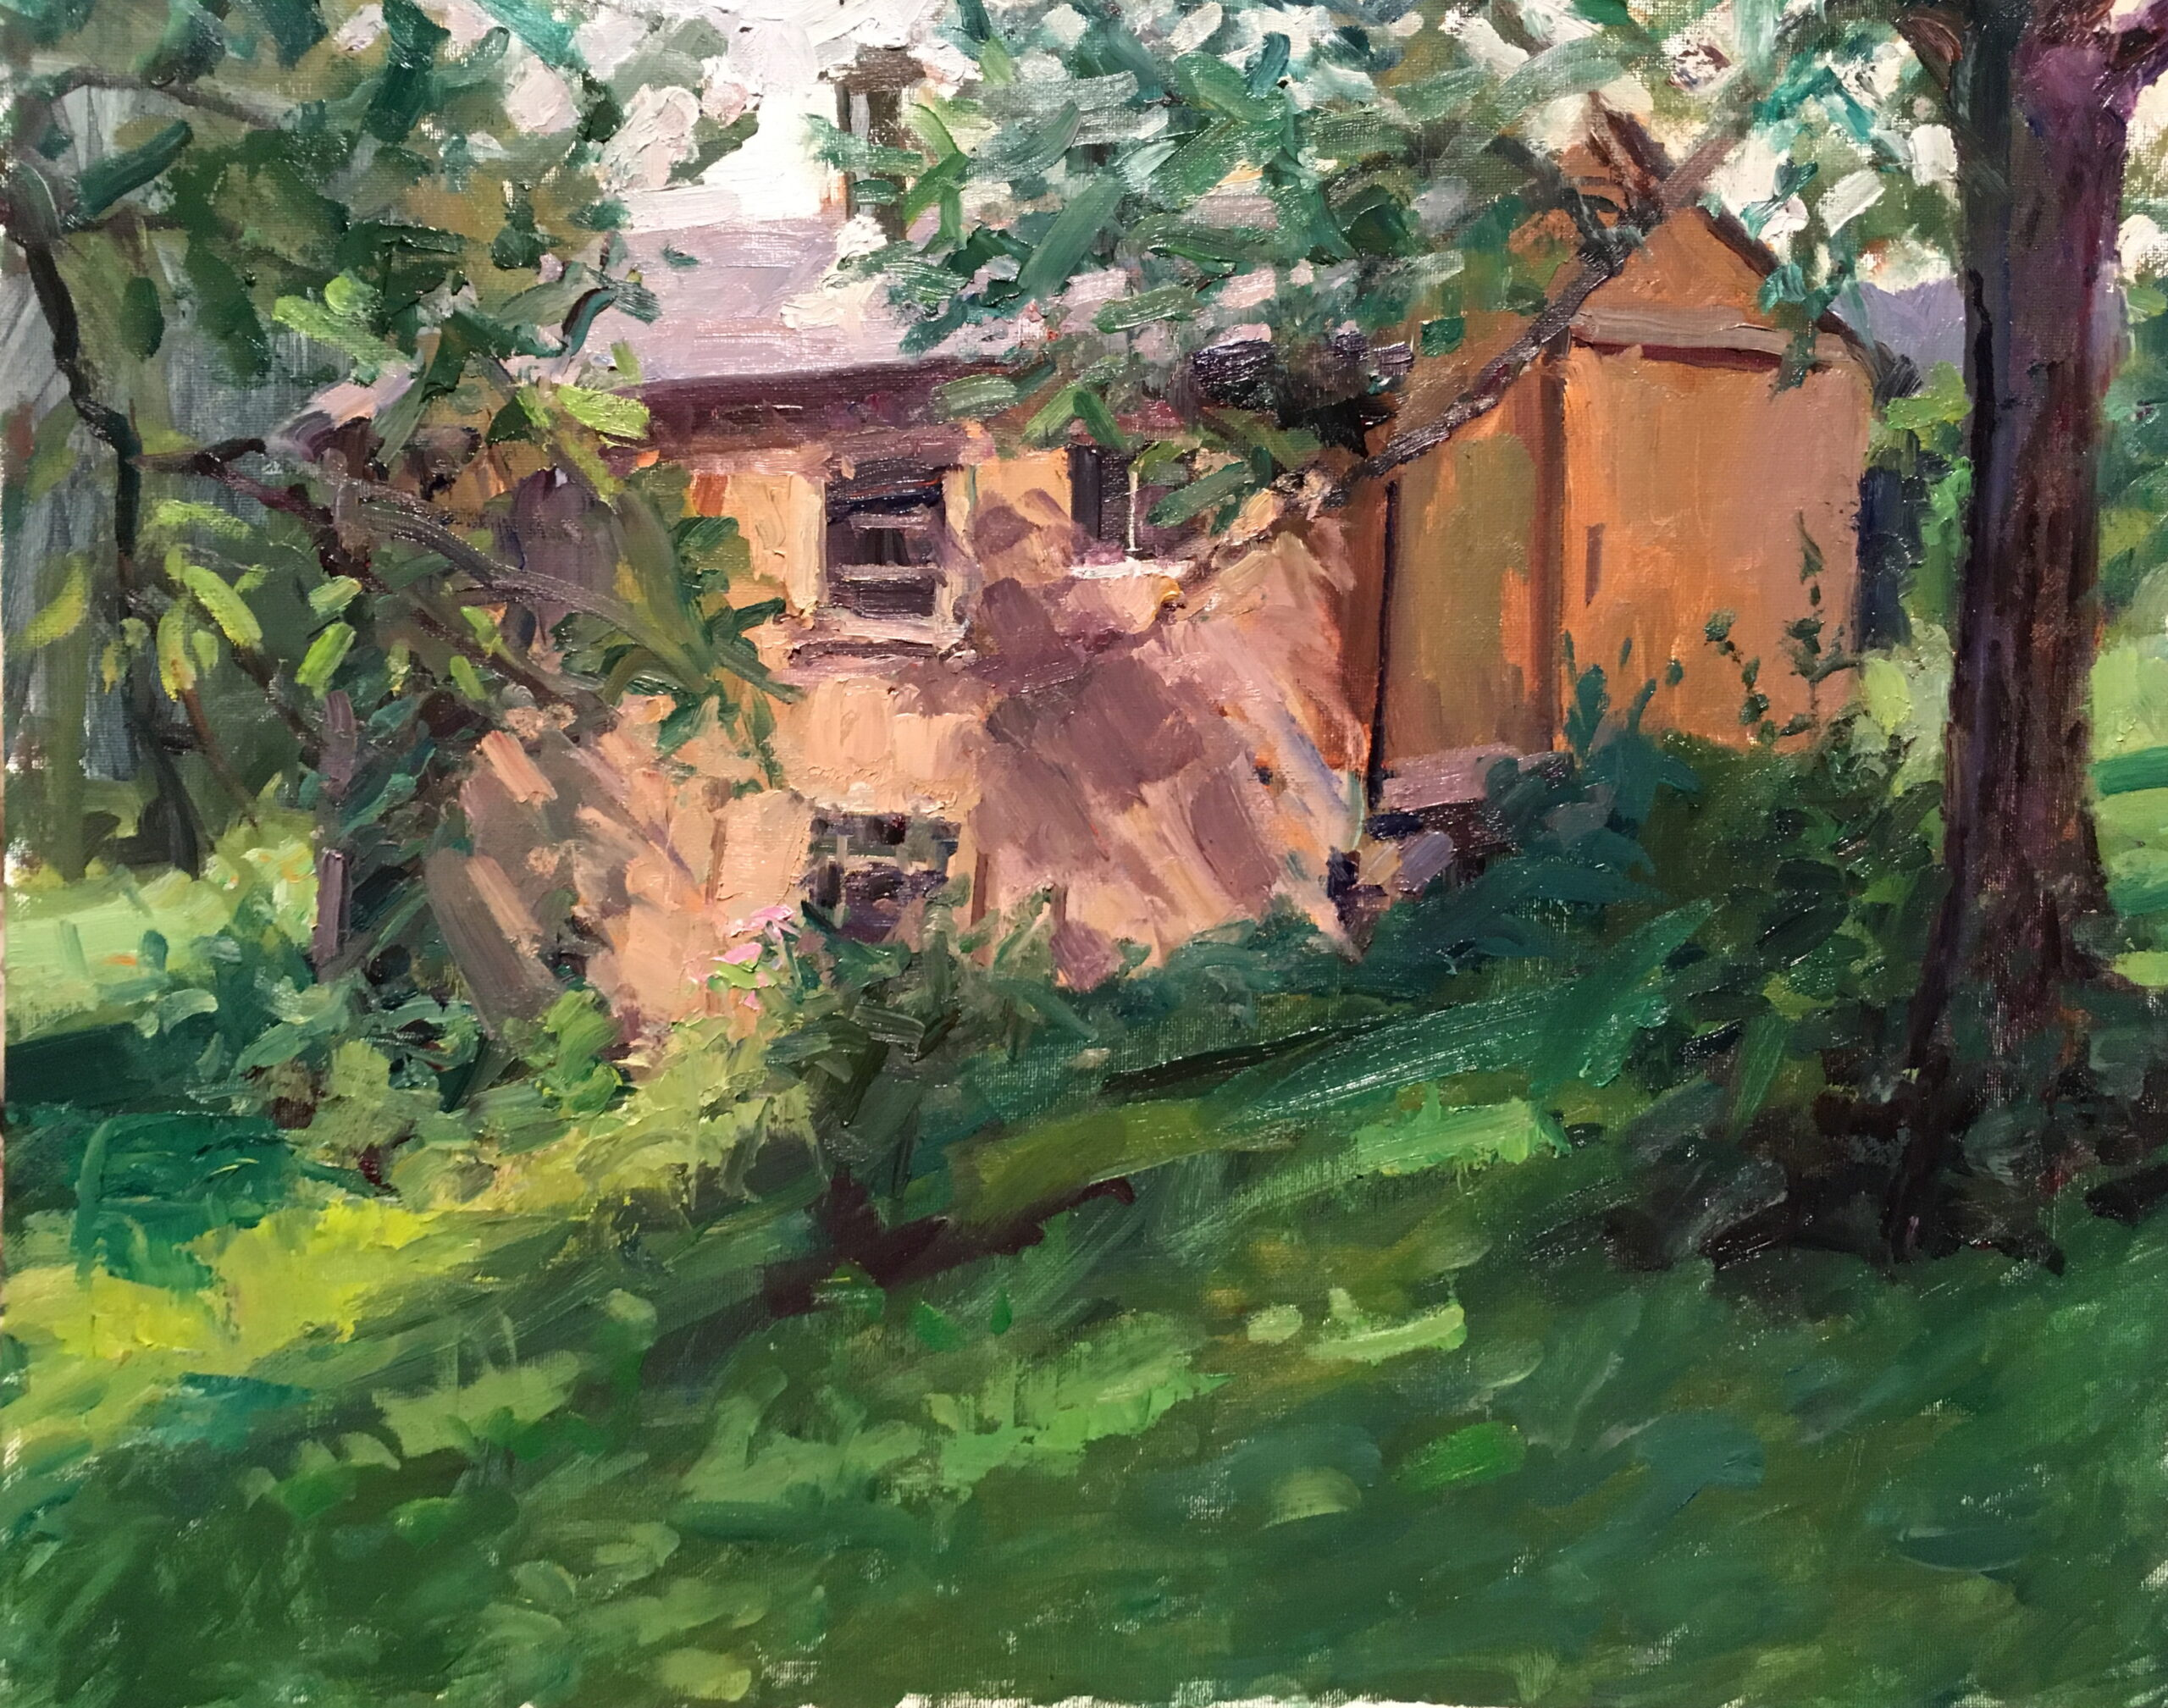 Barn in August, Oil on Canvas on Panel, 16 x 20 Inches, by Susan Grisell, $550